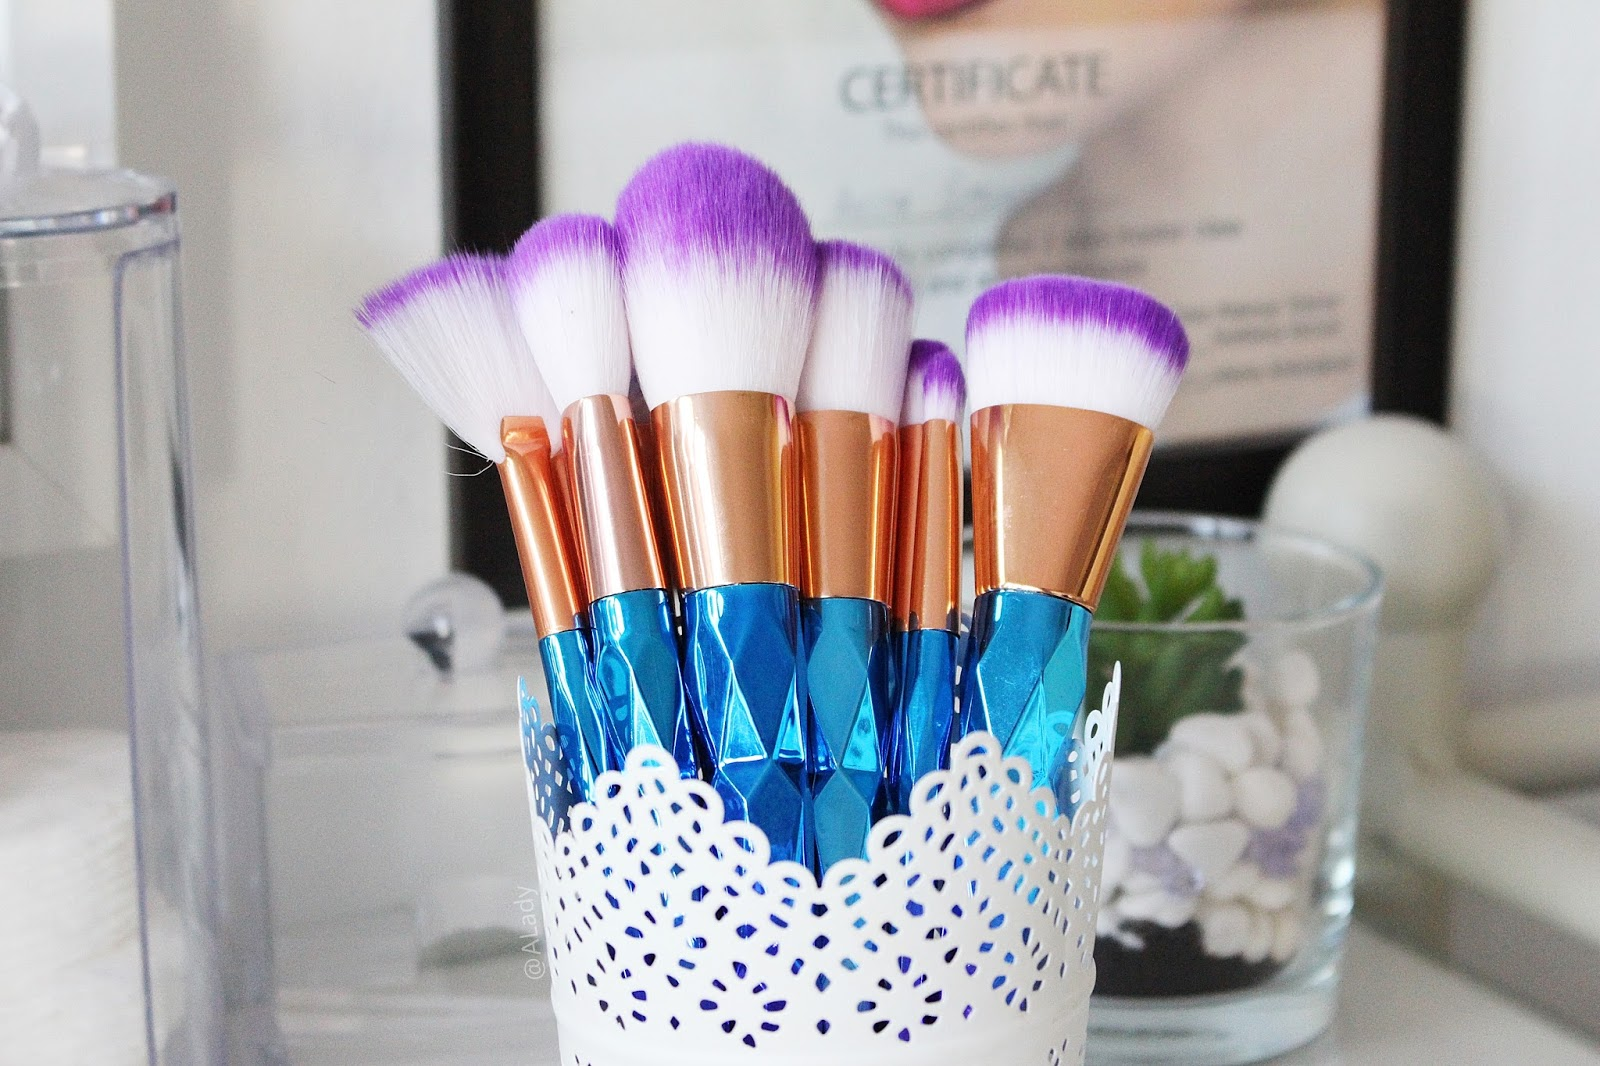 Unicorn brushes zaful